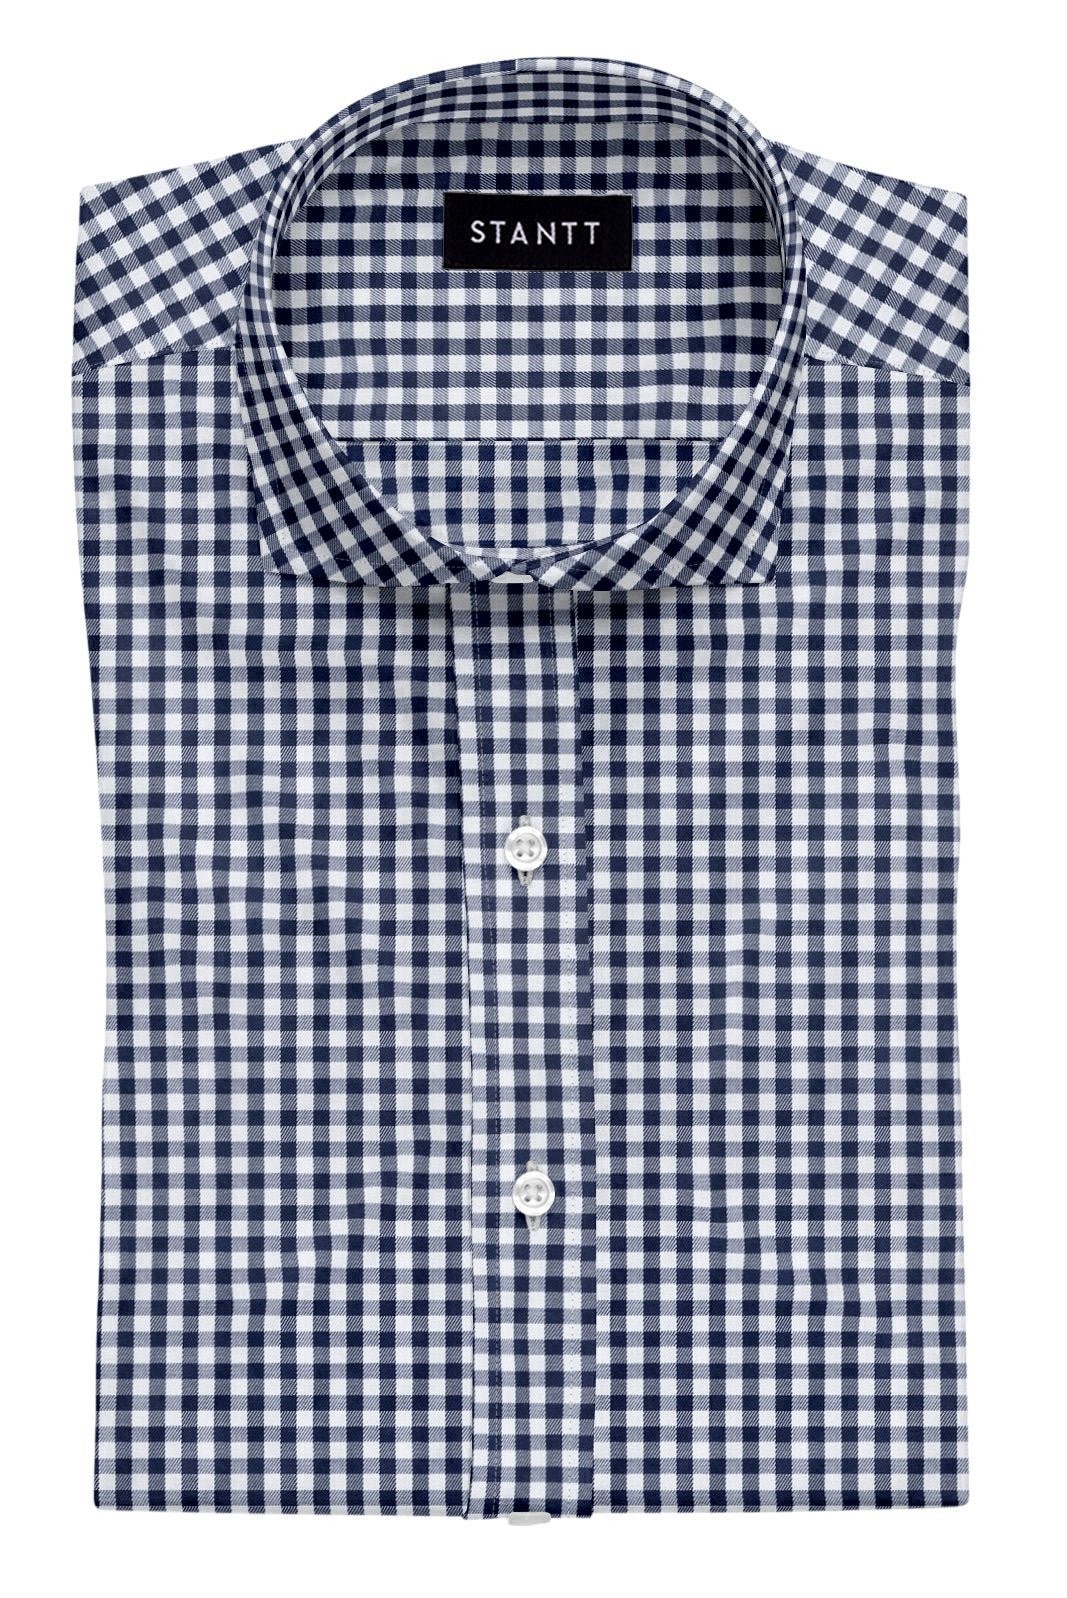 Navy Gingham: Cutaway Collar, French Cuff